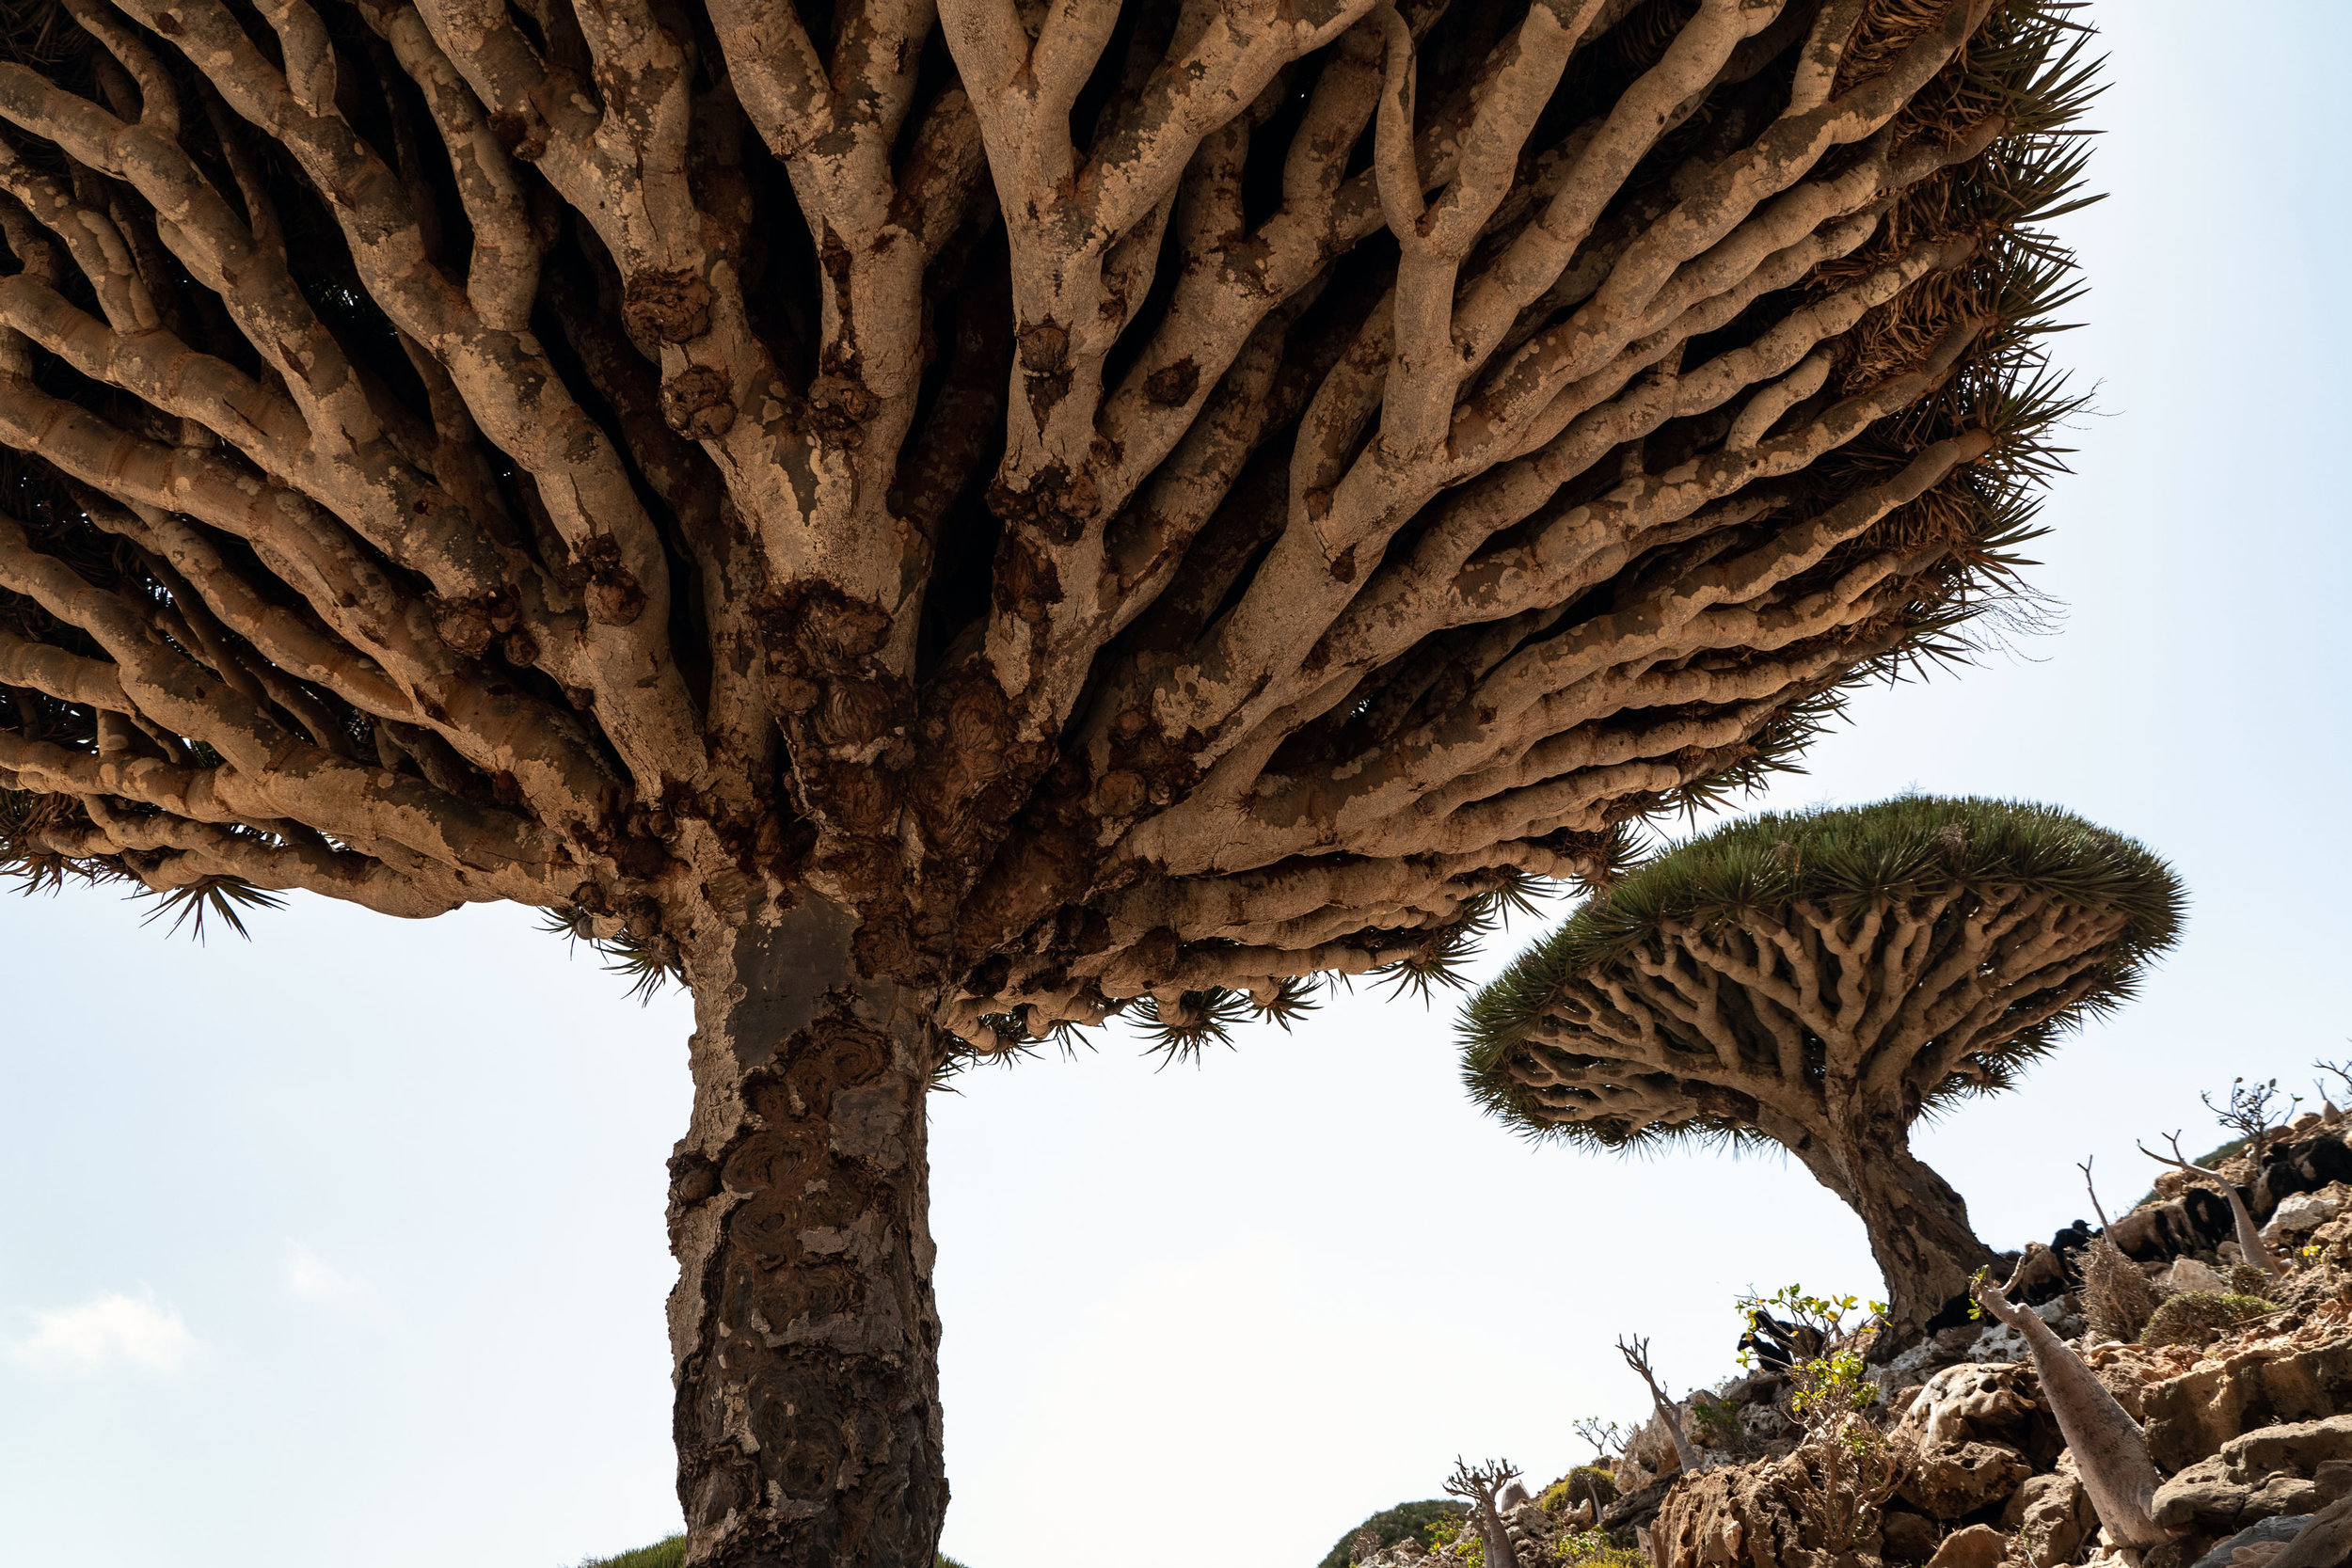 dragons-blood-tree-upclose-socotra-island-yemen-homhil-inertia-network.jpg